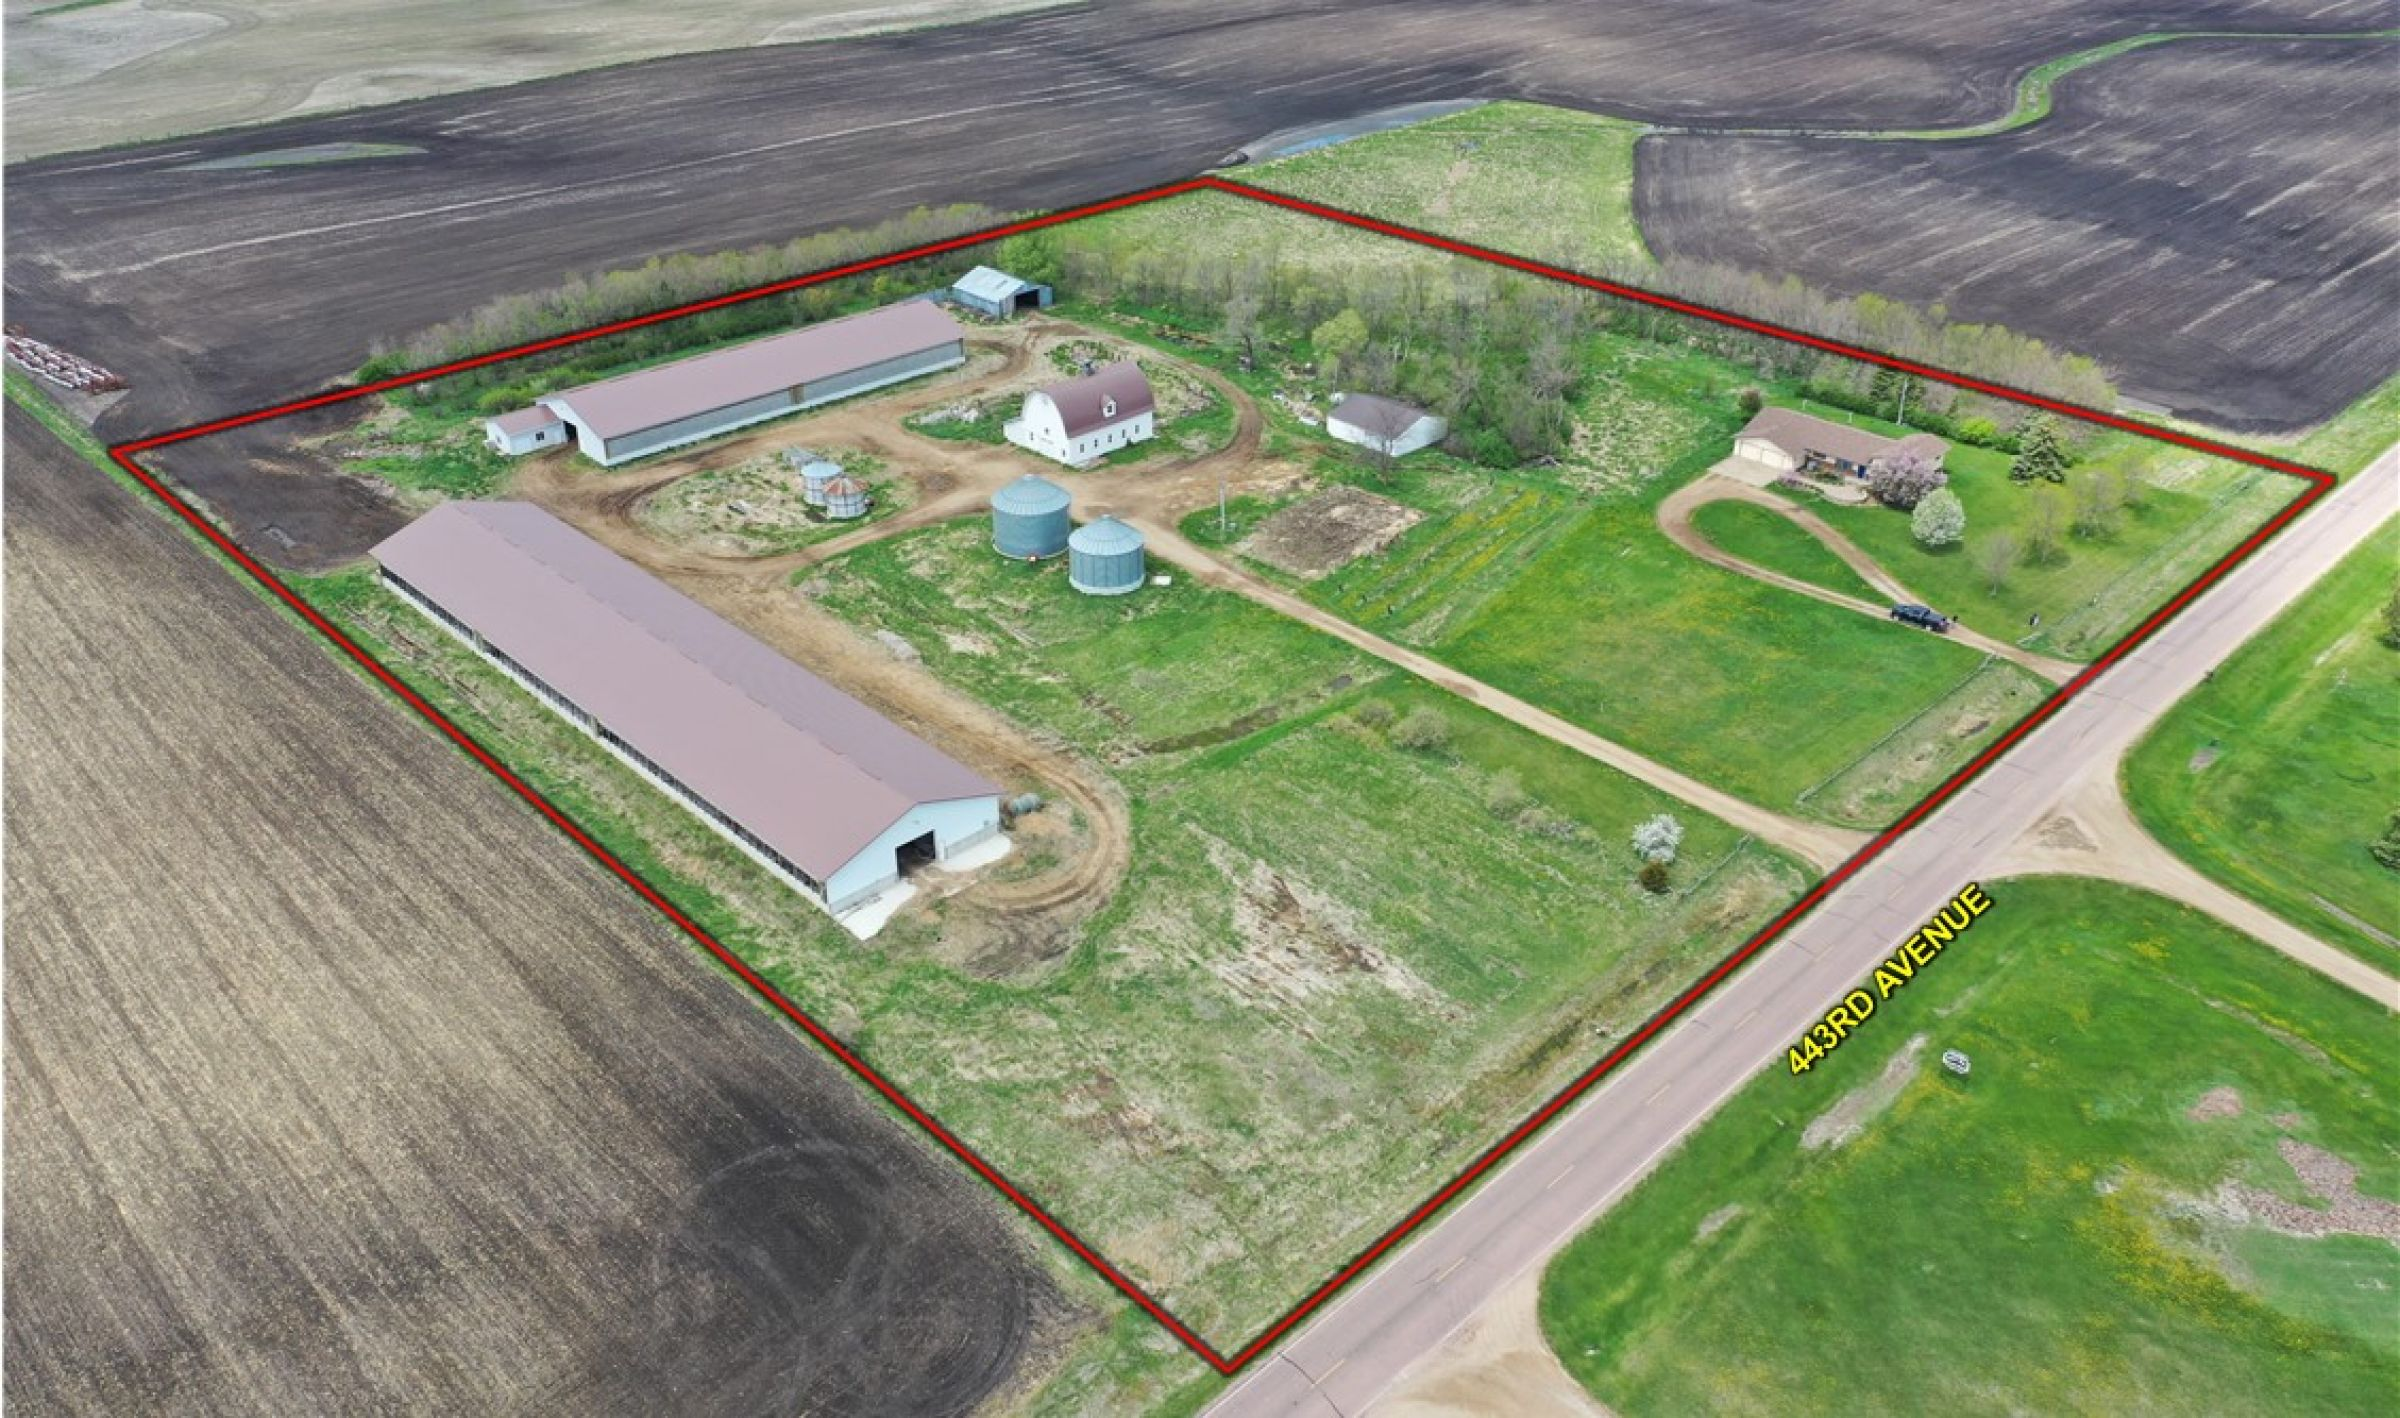 residential-auctions-land-turner-county-south-dakota-12-acres-listing-number-14971-0-2020-06-02-151909.jpg